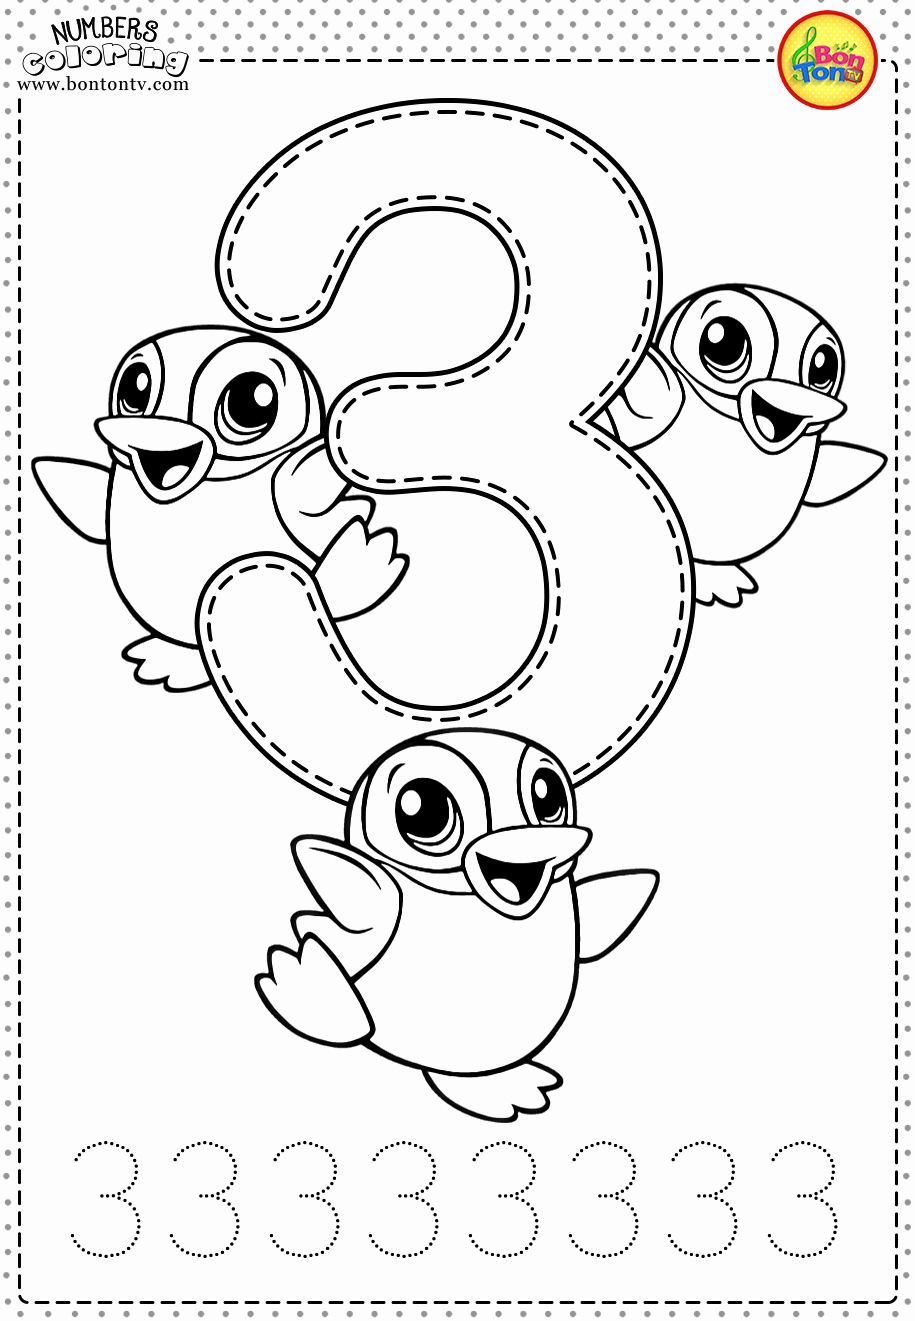 Number Coloring Sheets For Toddlers Beautiful Number 3 Preschool Printable Kids Learning Numbers Preschool Worksheets Free Printables Free Preschool Printables